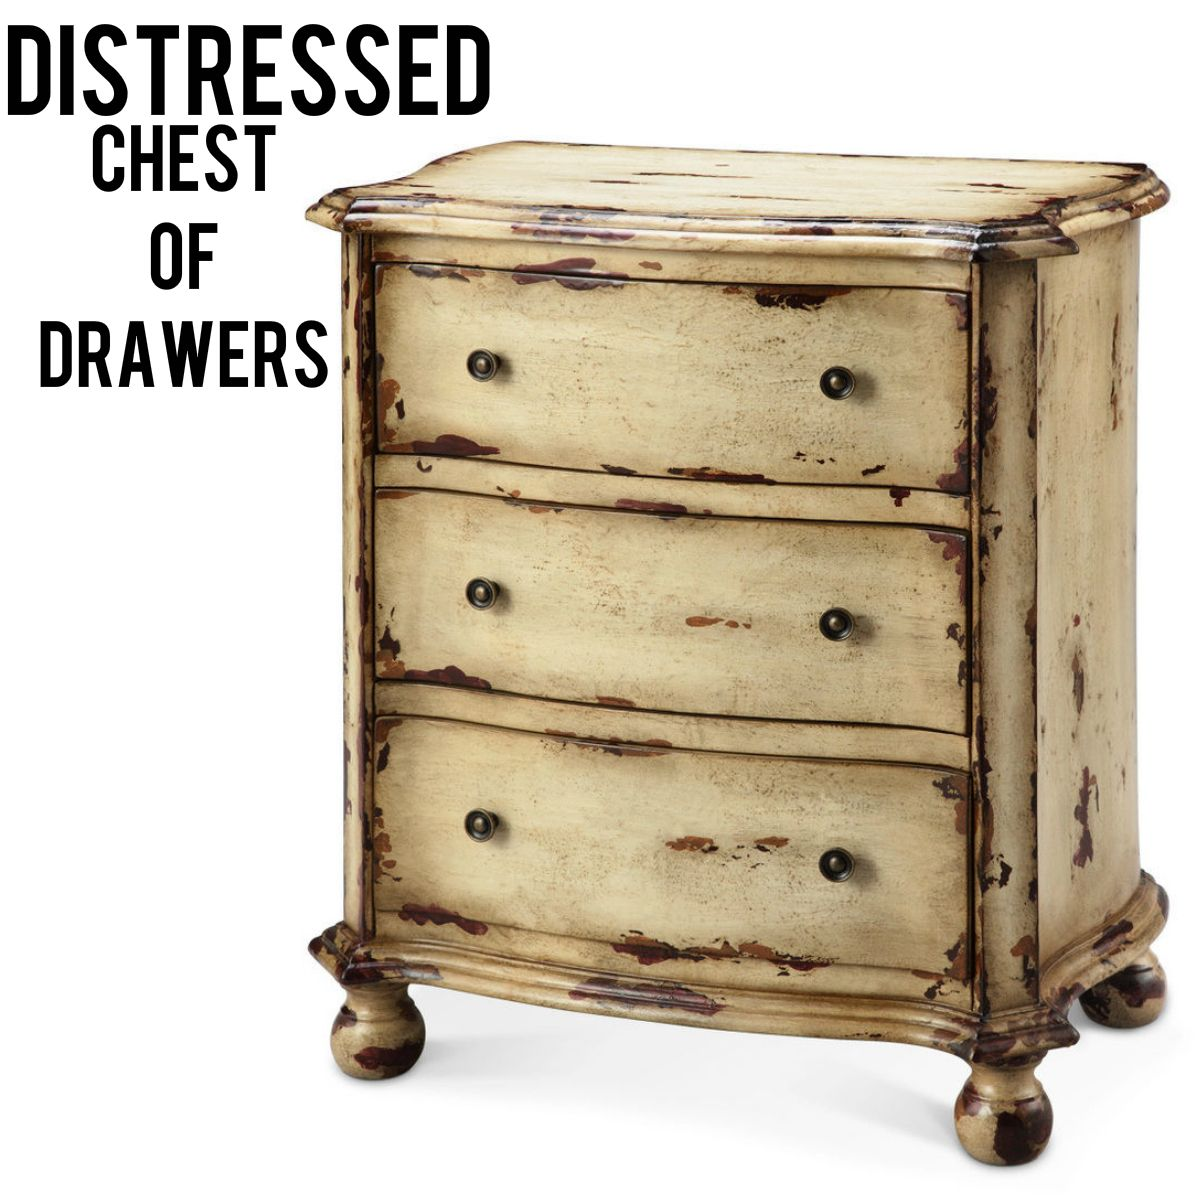 This charming three drawer chest made from hand cast hardware is